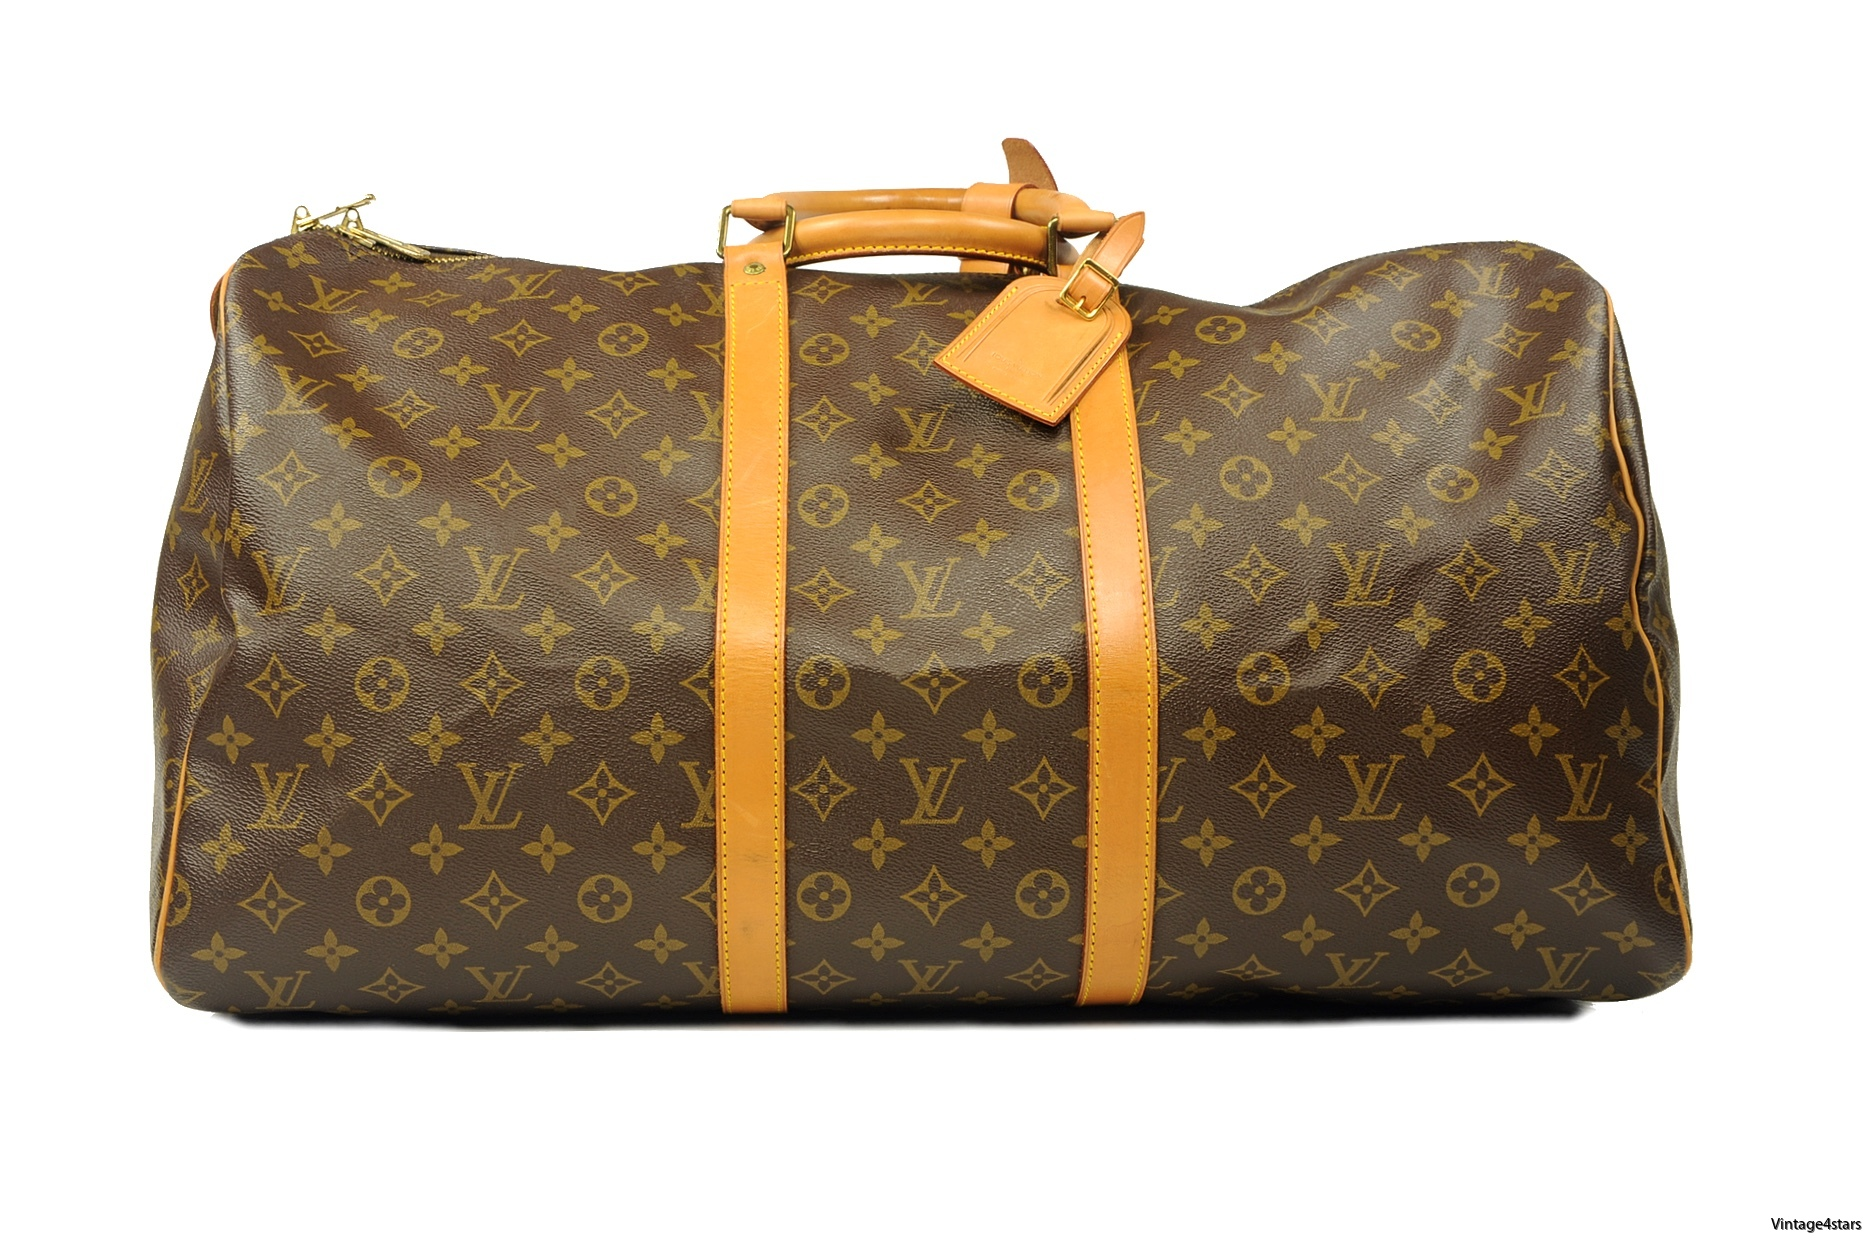 LOUIS VUITTON KEEPALL 55 10-2